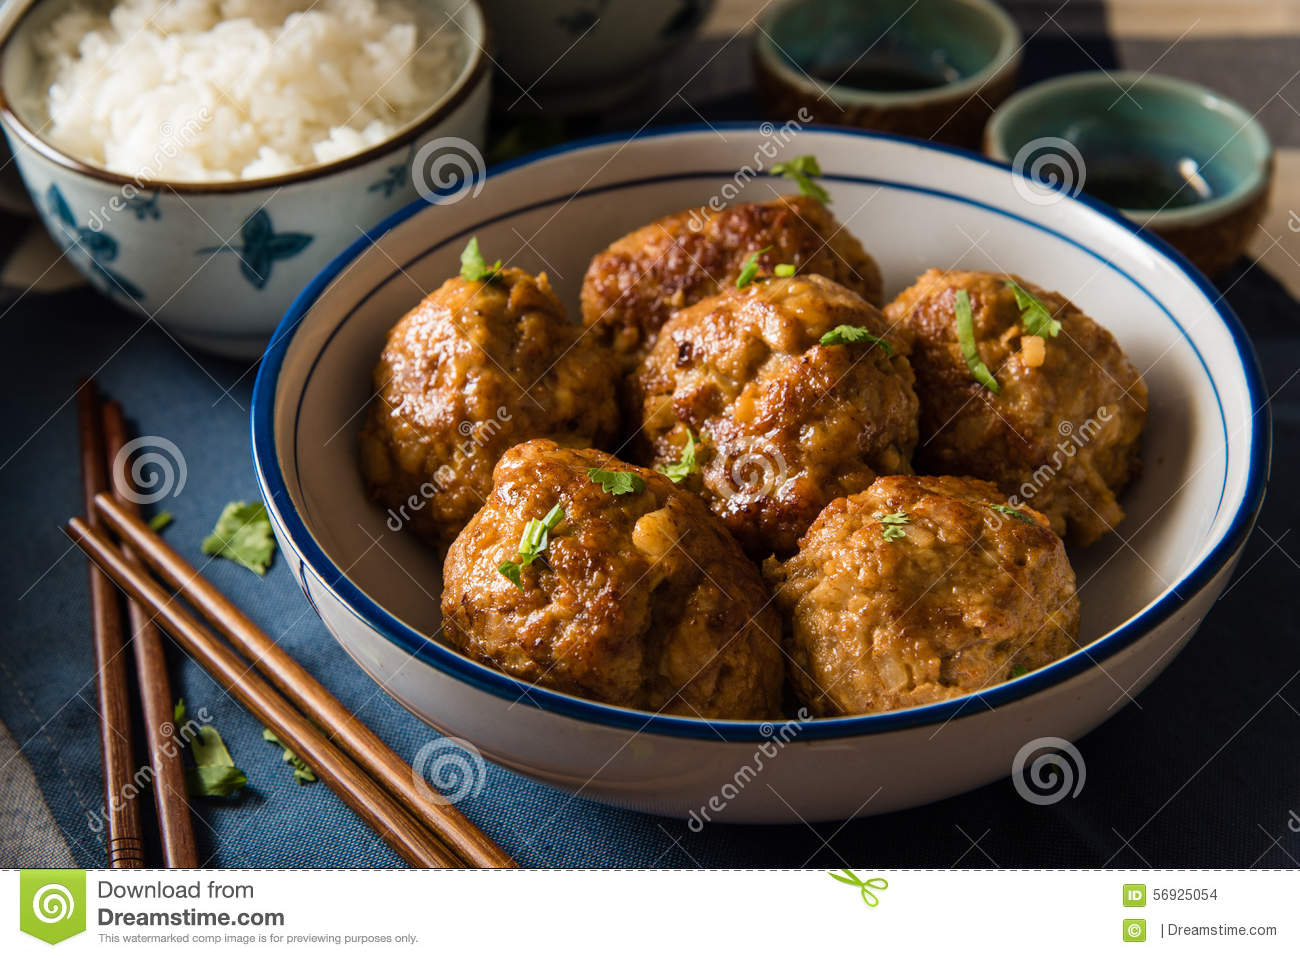 Asian Meatballs Served with White Rice